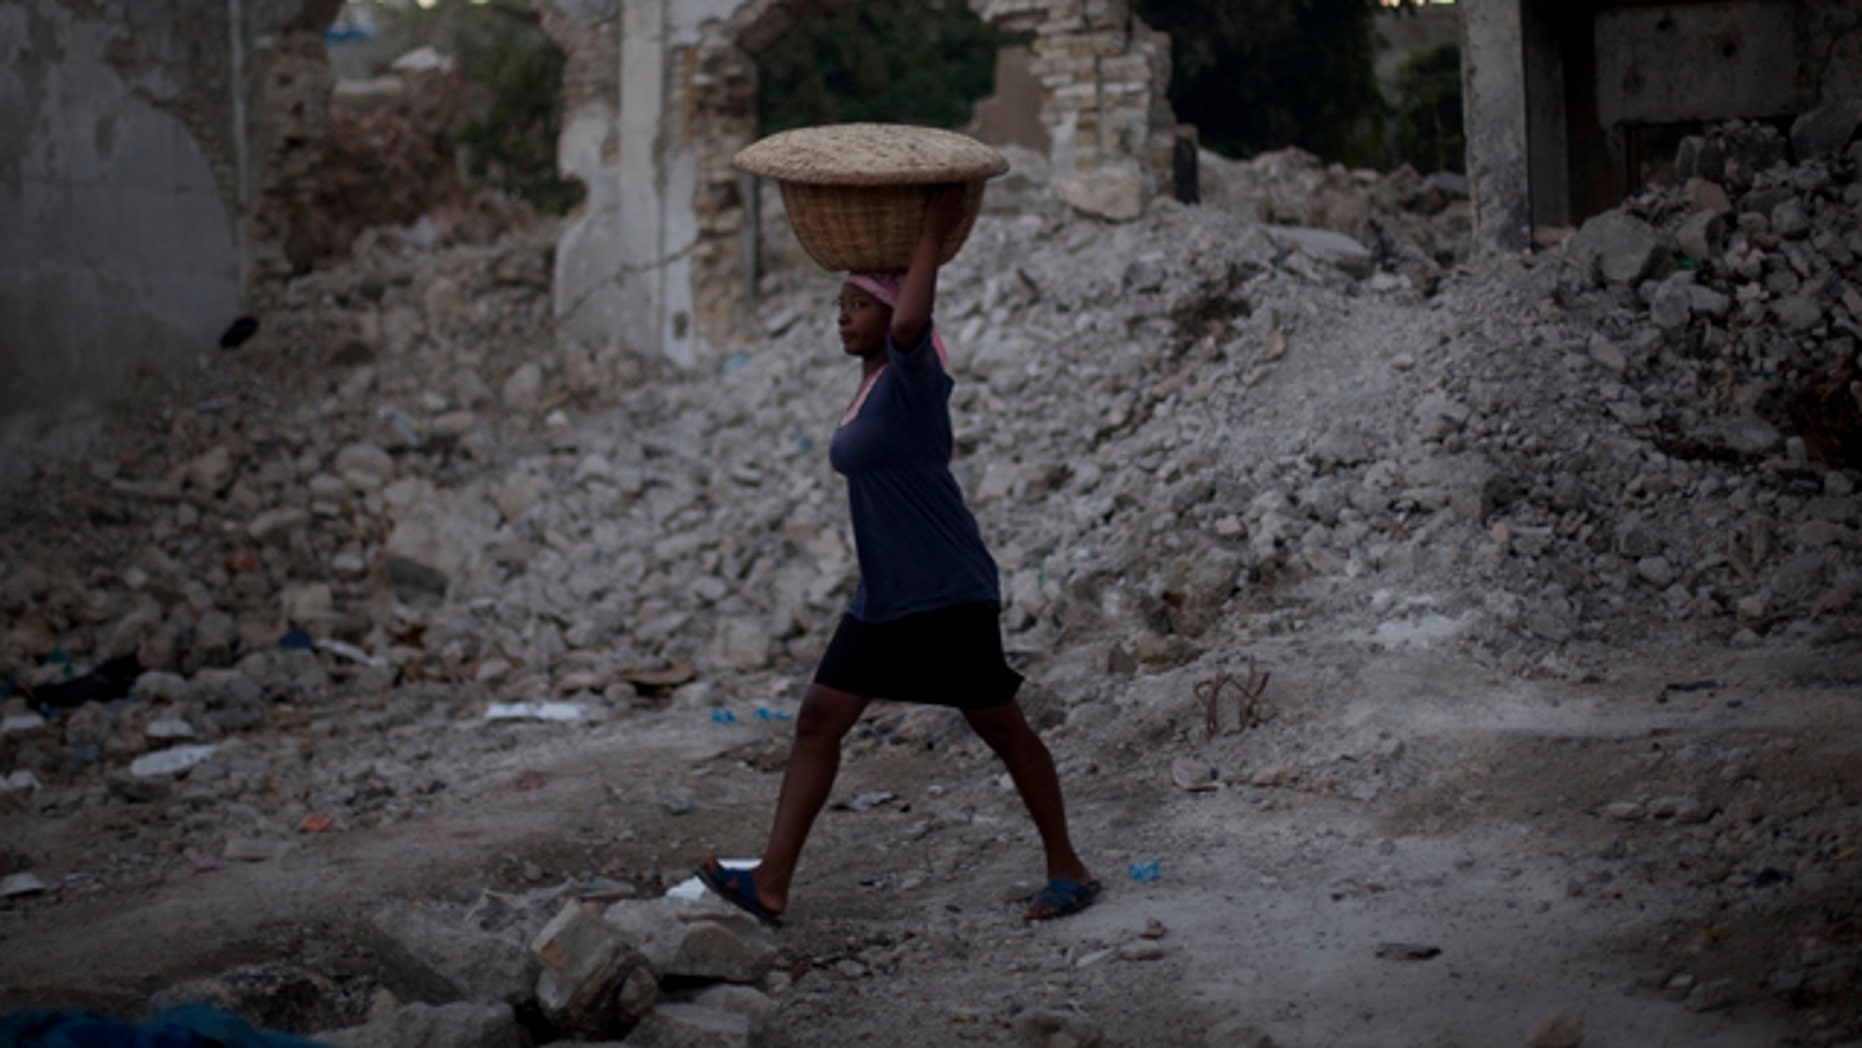 Jan. 5: A woman walks through the rubble of quake-damaged buildings in downtown Port-au-Prince, Haiti.